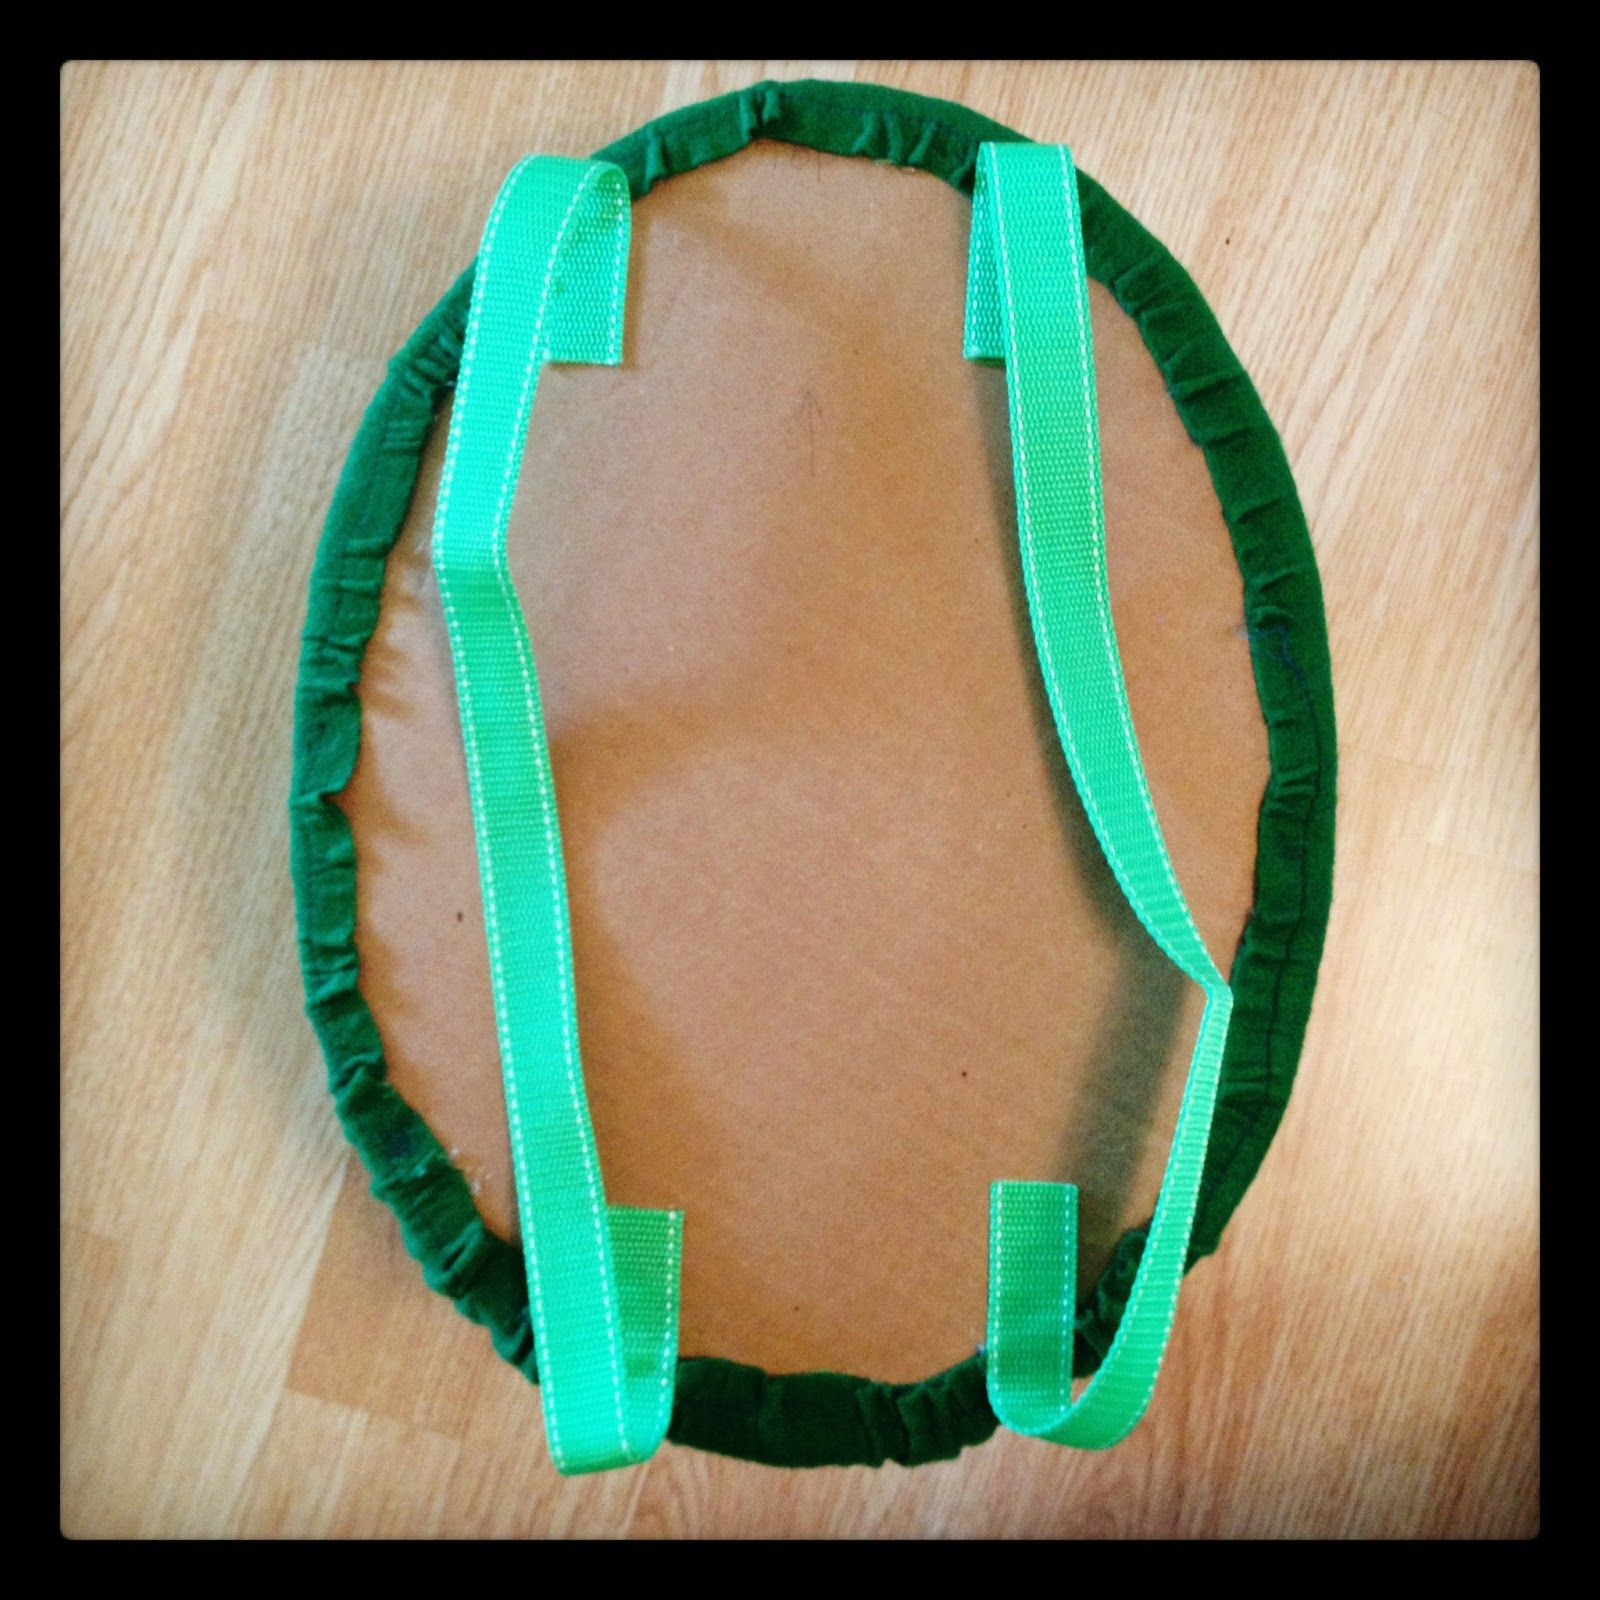 Best ideas about Turtle Costume DIY . Save or Pin home made kids turtle costume Now.